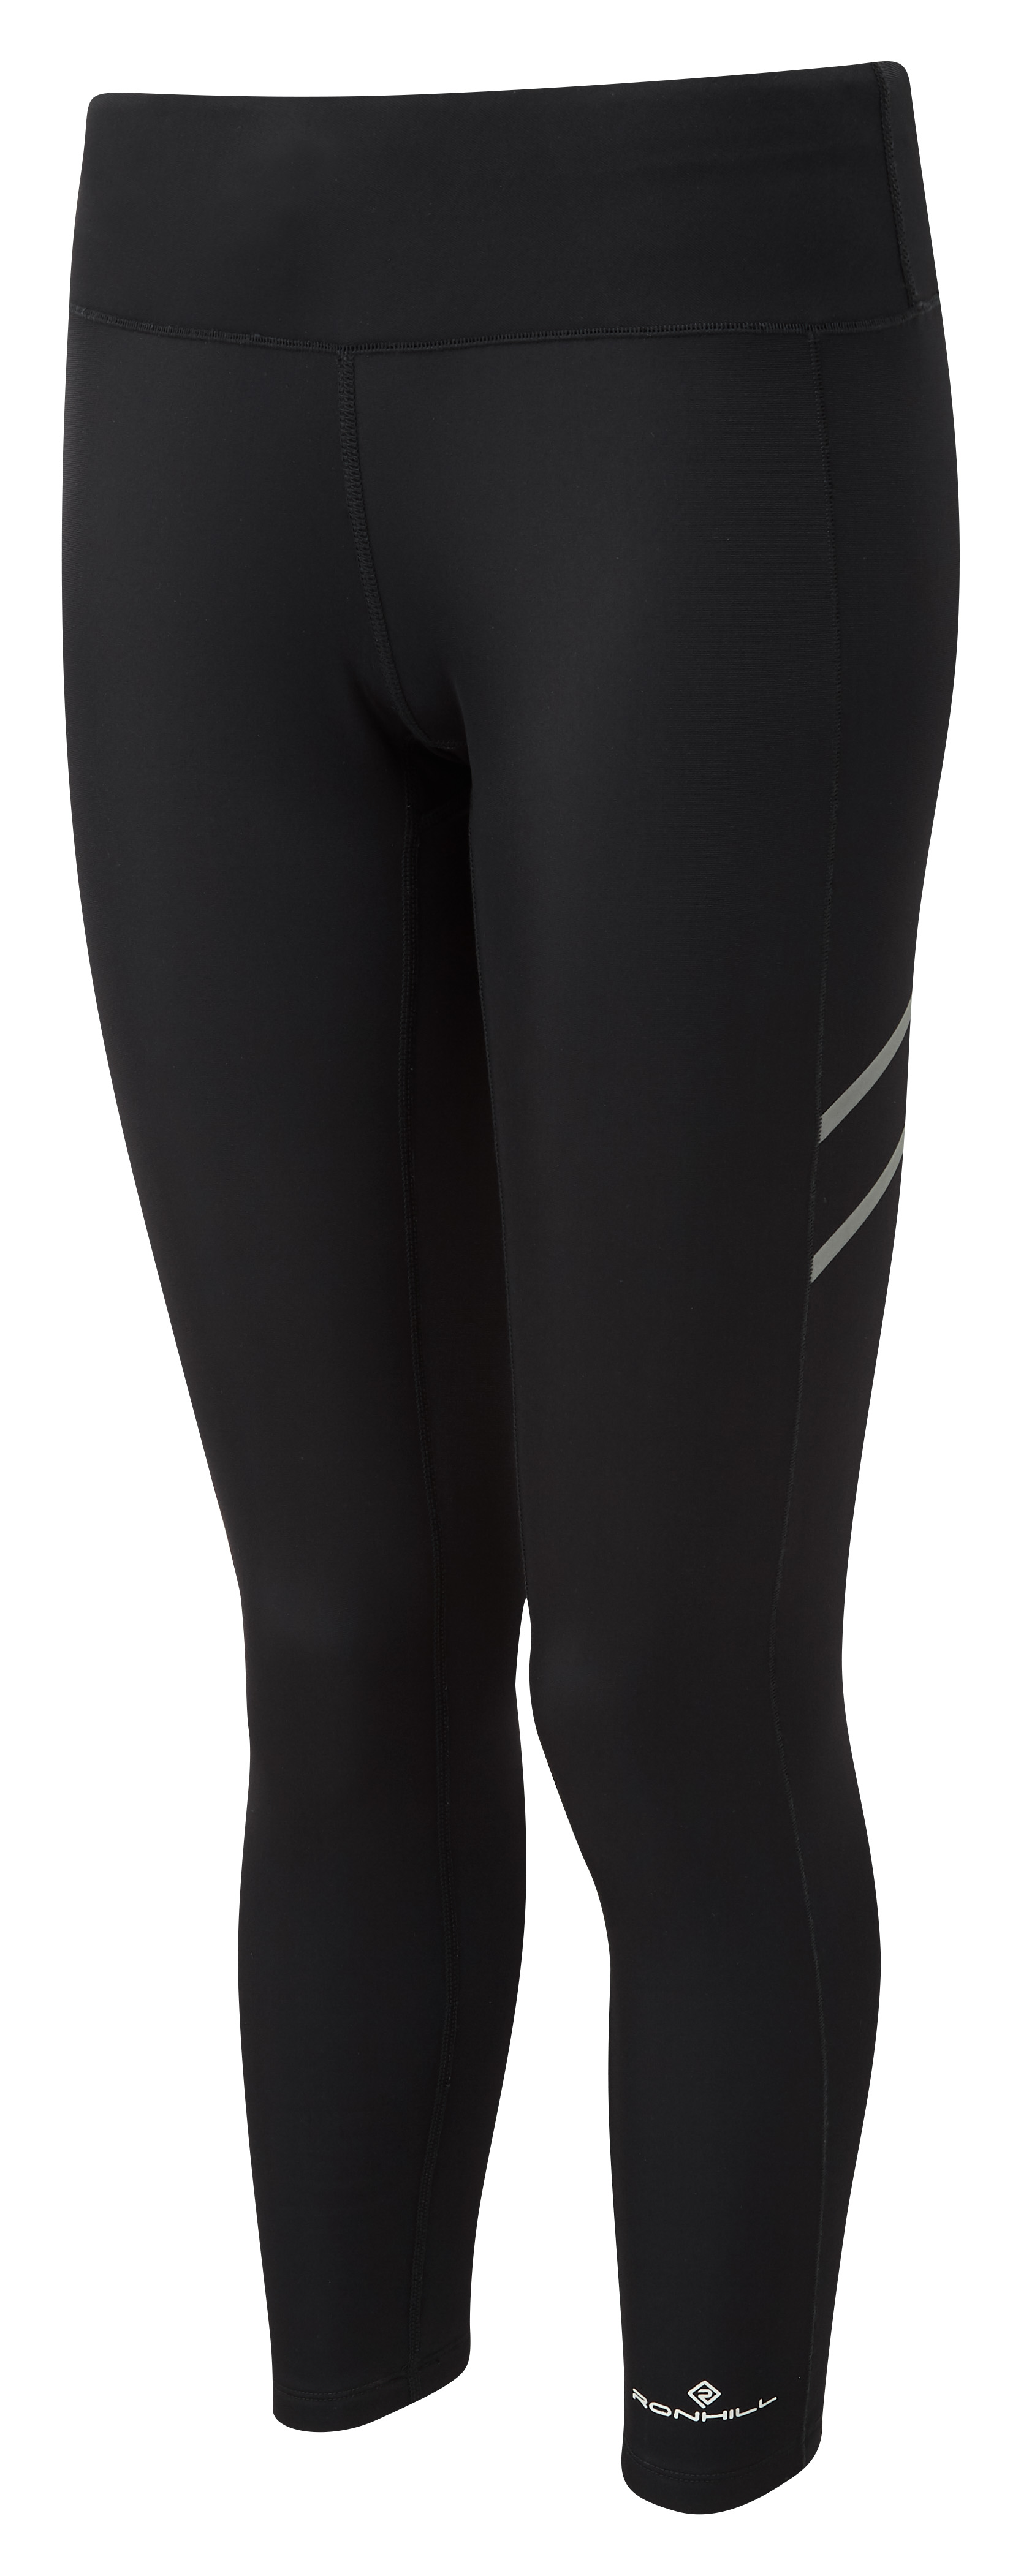 Ronhill Women's Stride Winter Tight   Trousers